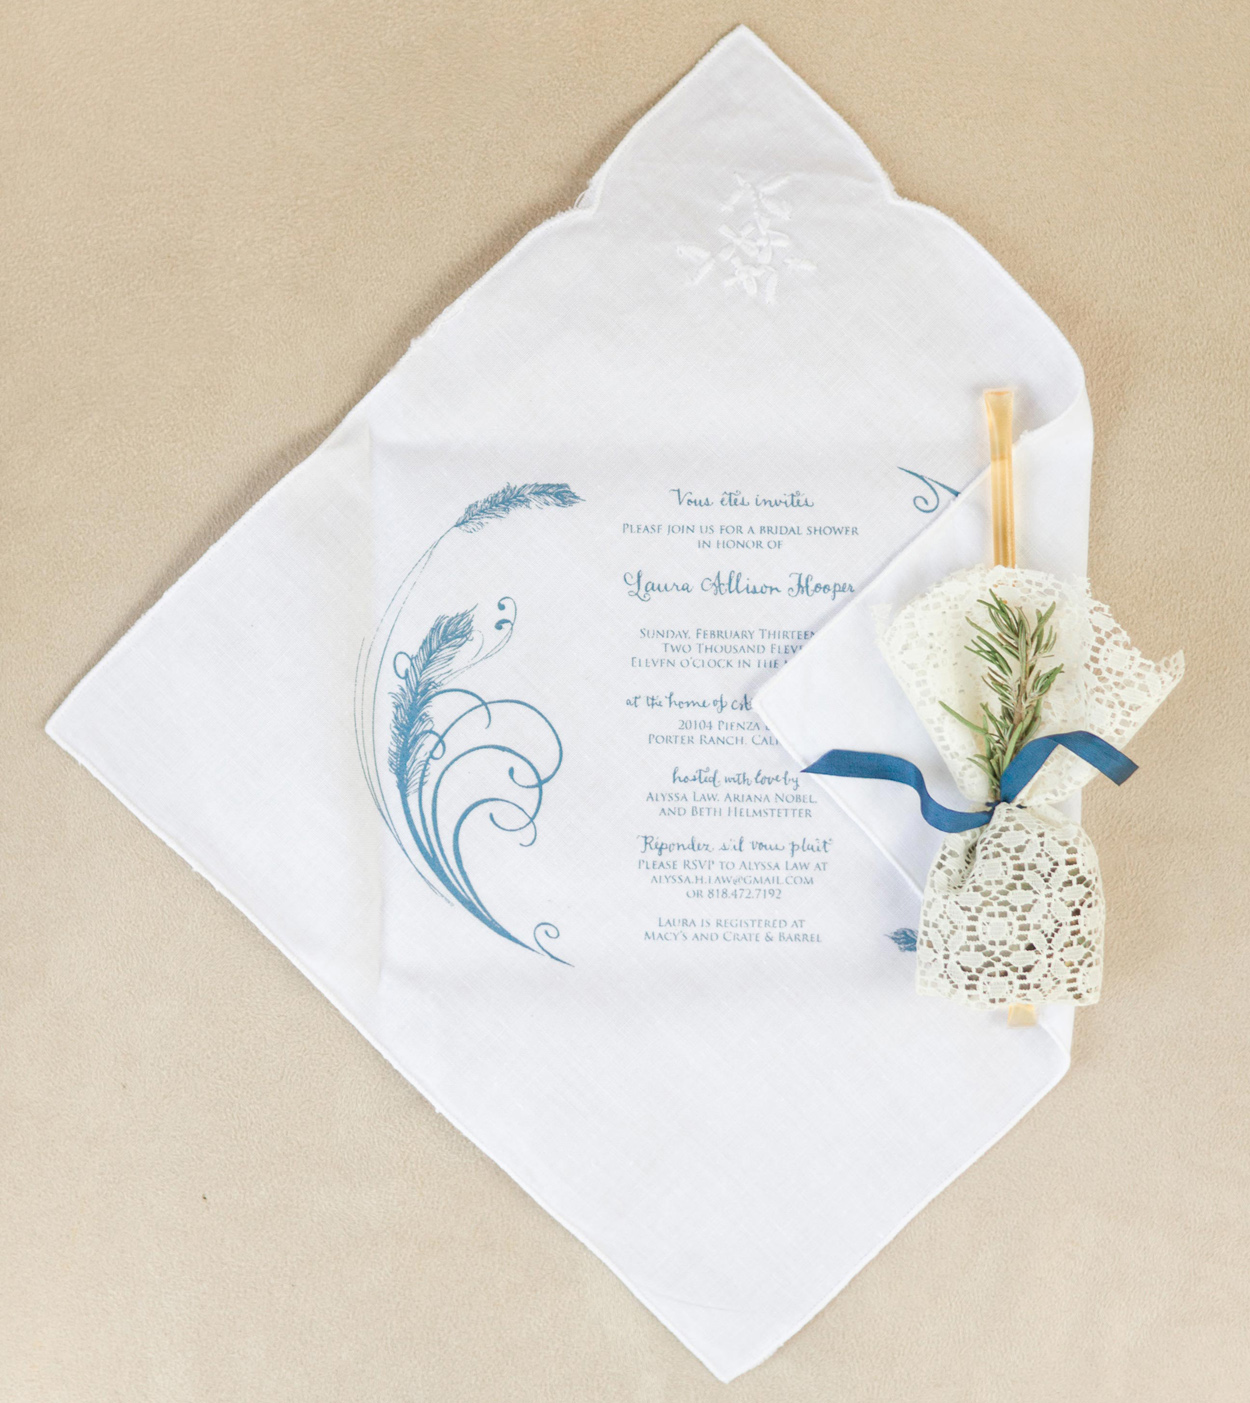 Etiquette for Bridal Shower Invitations - Inside Weddings